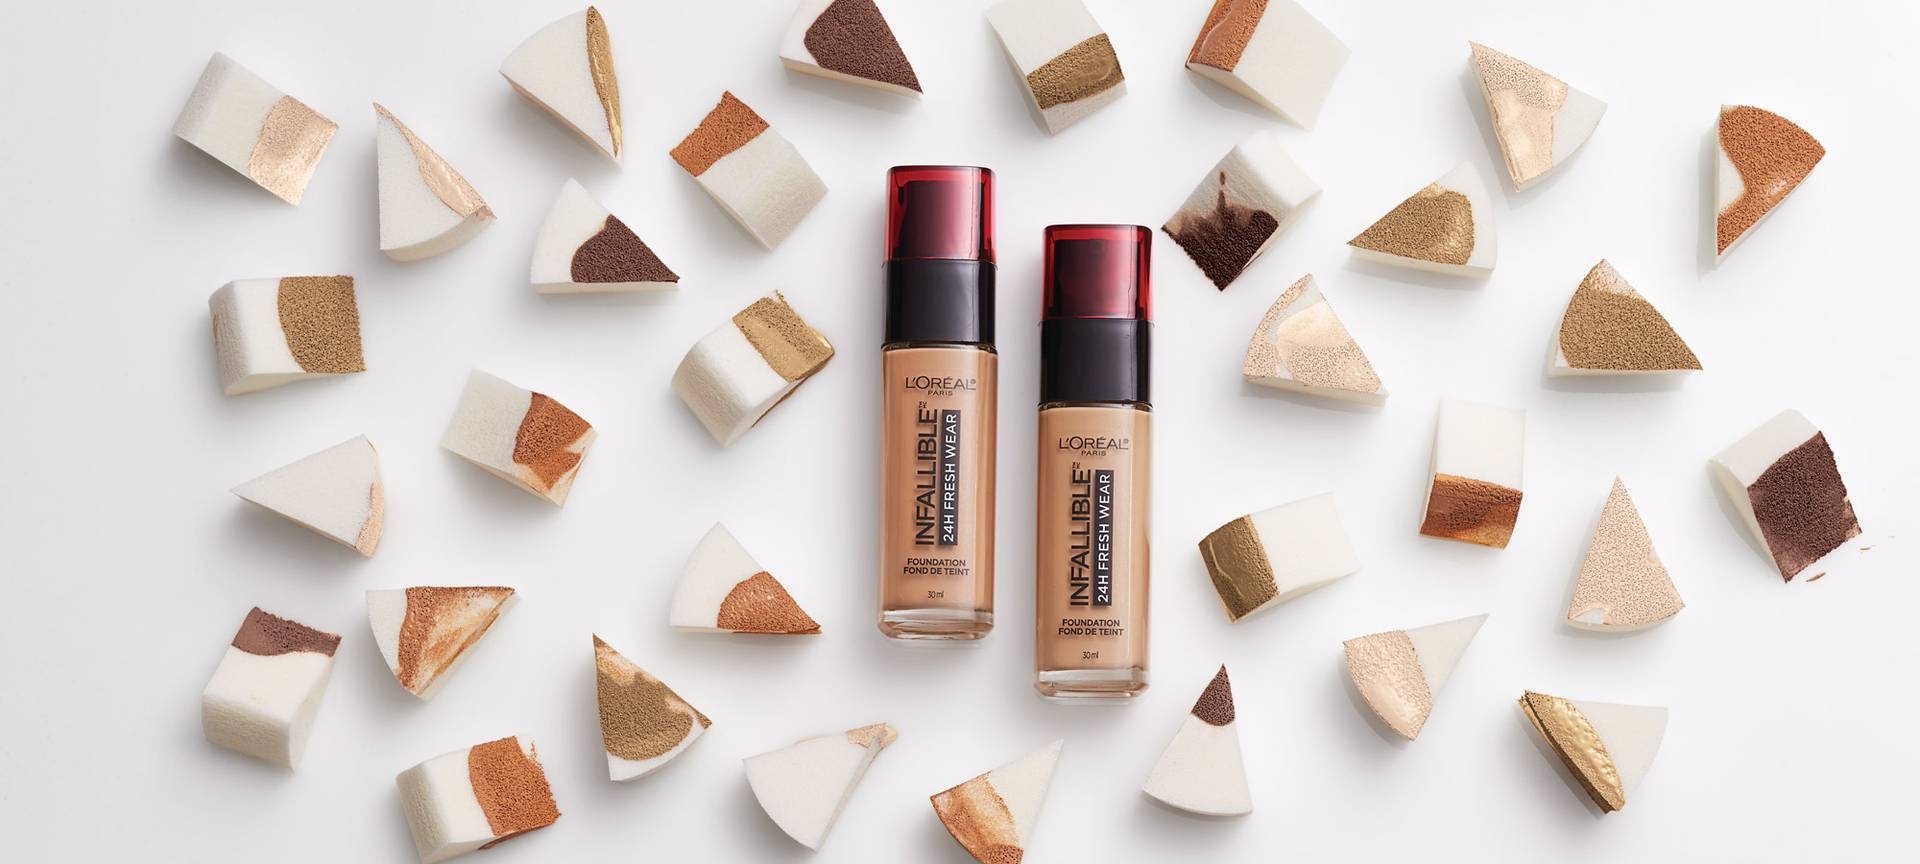 Infallible 24hr Fresh Wear Foundation Swatches And How To Find The Right Shade For Your Skin Tone L Oreal Paris